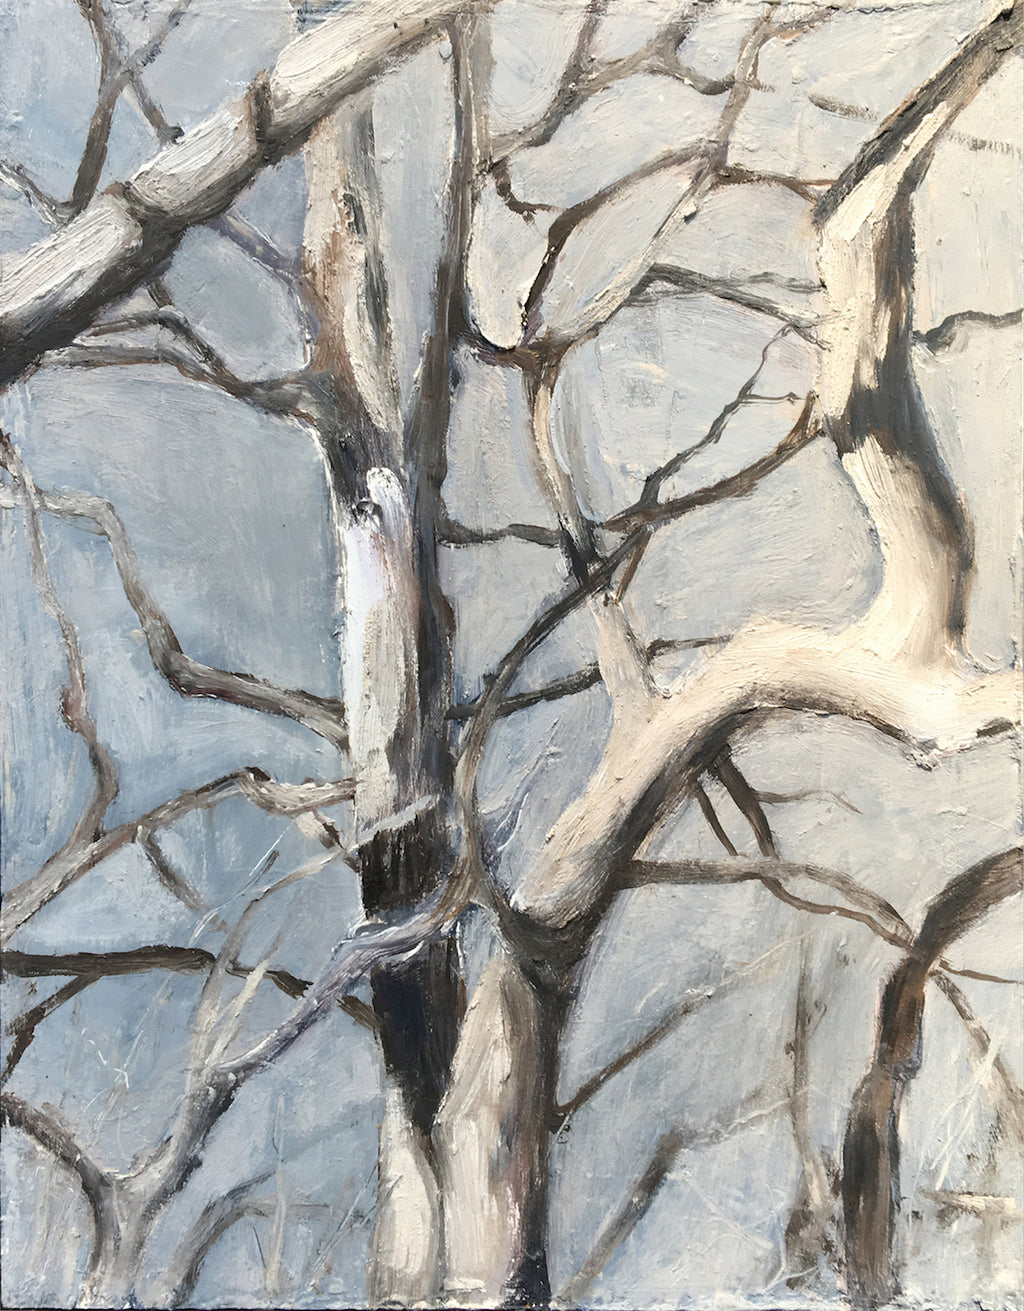 An intimate observation of the mingling branches that weave together to form this delicate composition filled with movement and freedom. Third in a series of three vignettes painted from Isabelle's favorite old sycamore tree.